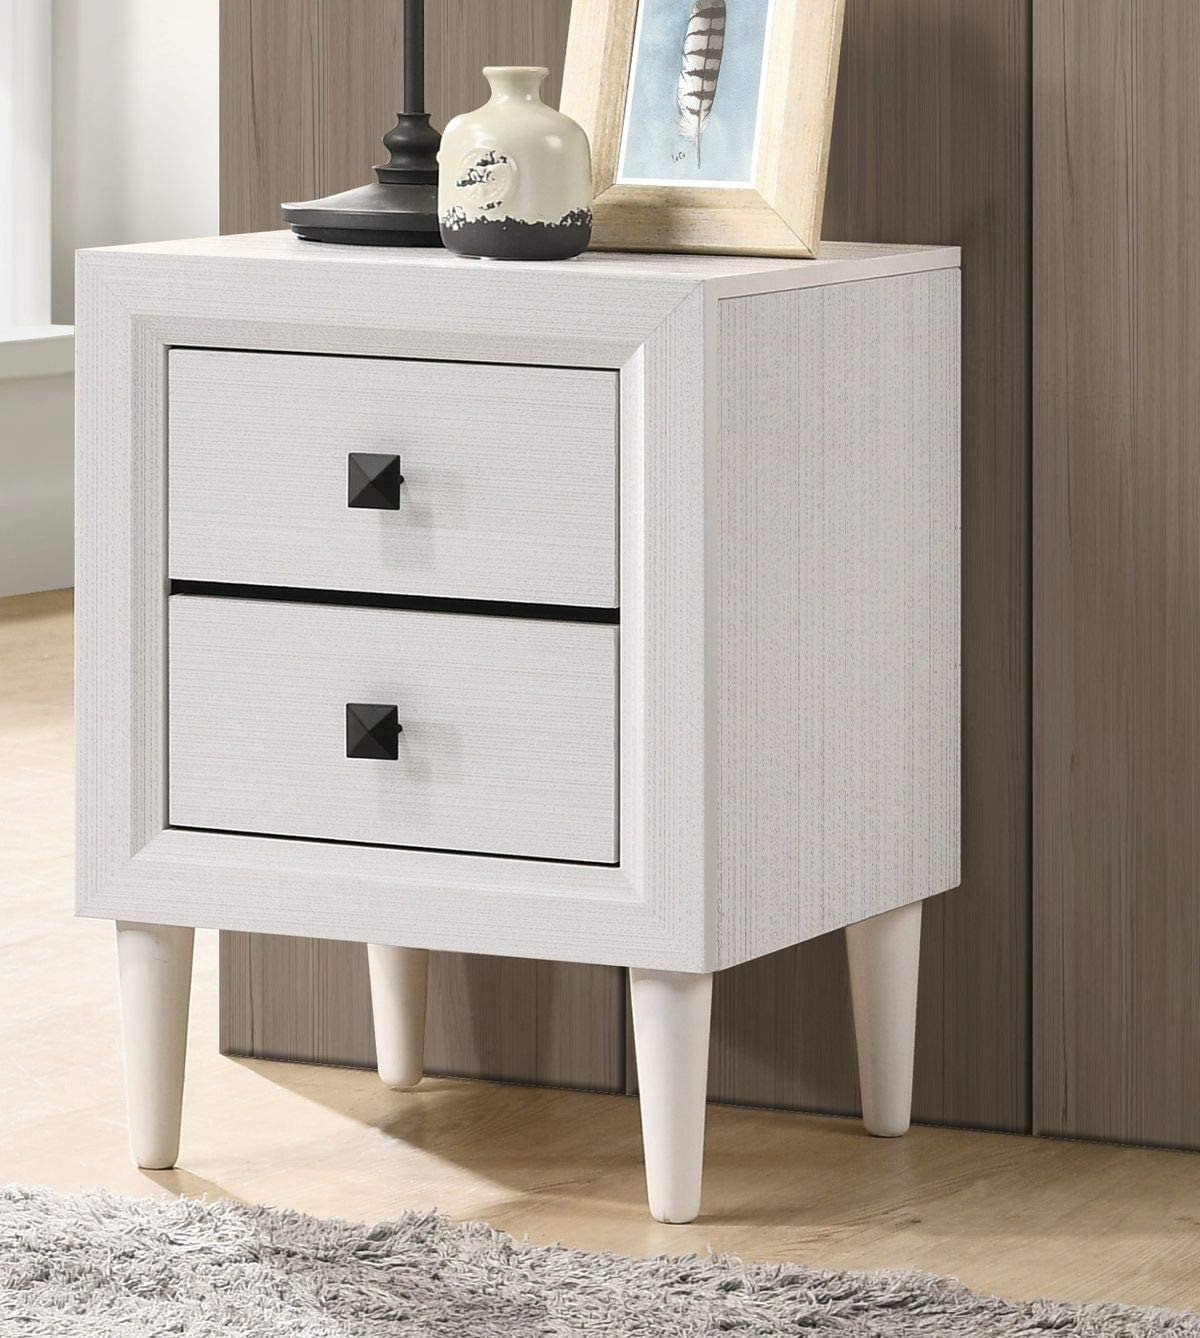 Depointer Life 2 Drawers Nightstand,Wood Bedside Storage Cabinet, Accent End Side Table Chest, Perfect for Home Furniture, Bedroom Living Room Accessories,White